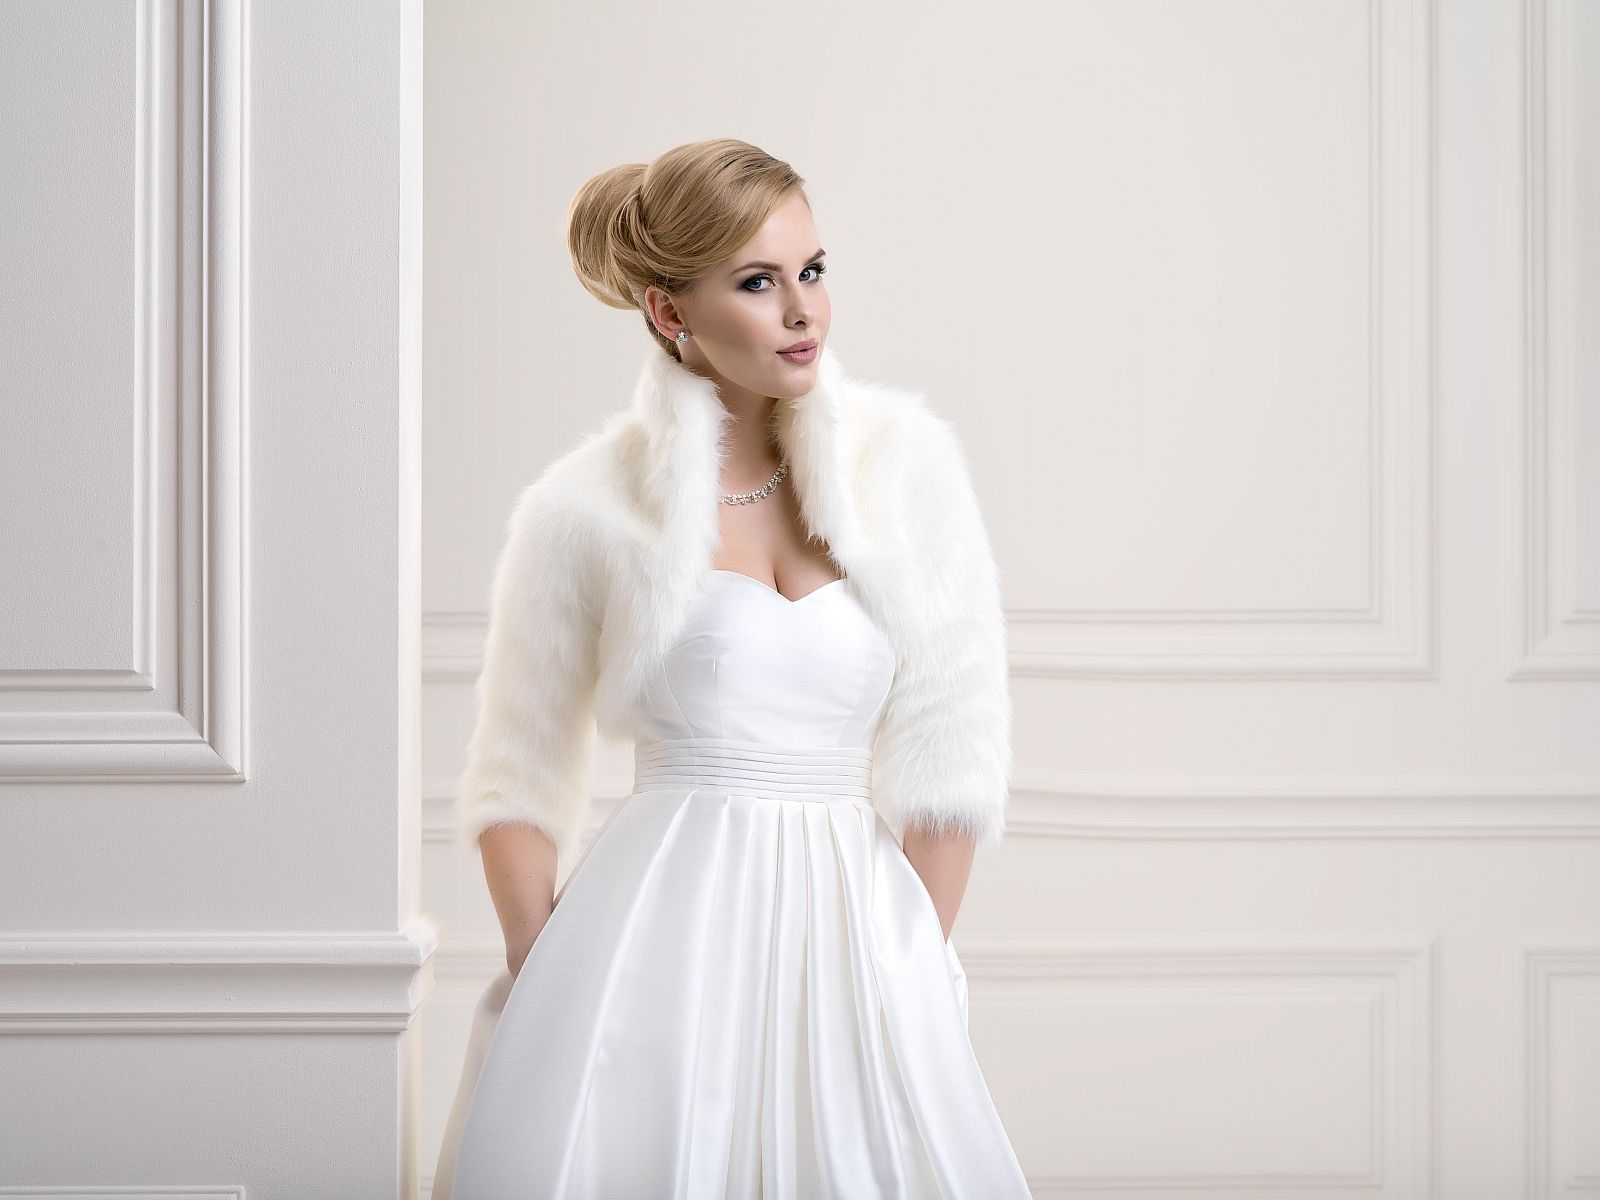 Stylish Faux Fur Bridal Bolero Fox Wedding Jacket Made From High Quality Beautifully Soft And Lined Inside Available In White Ivory